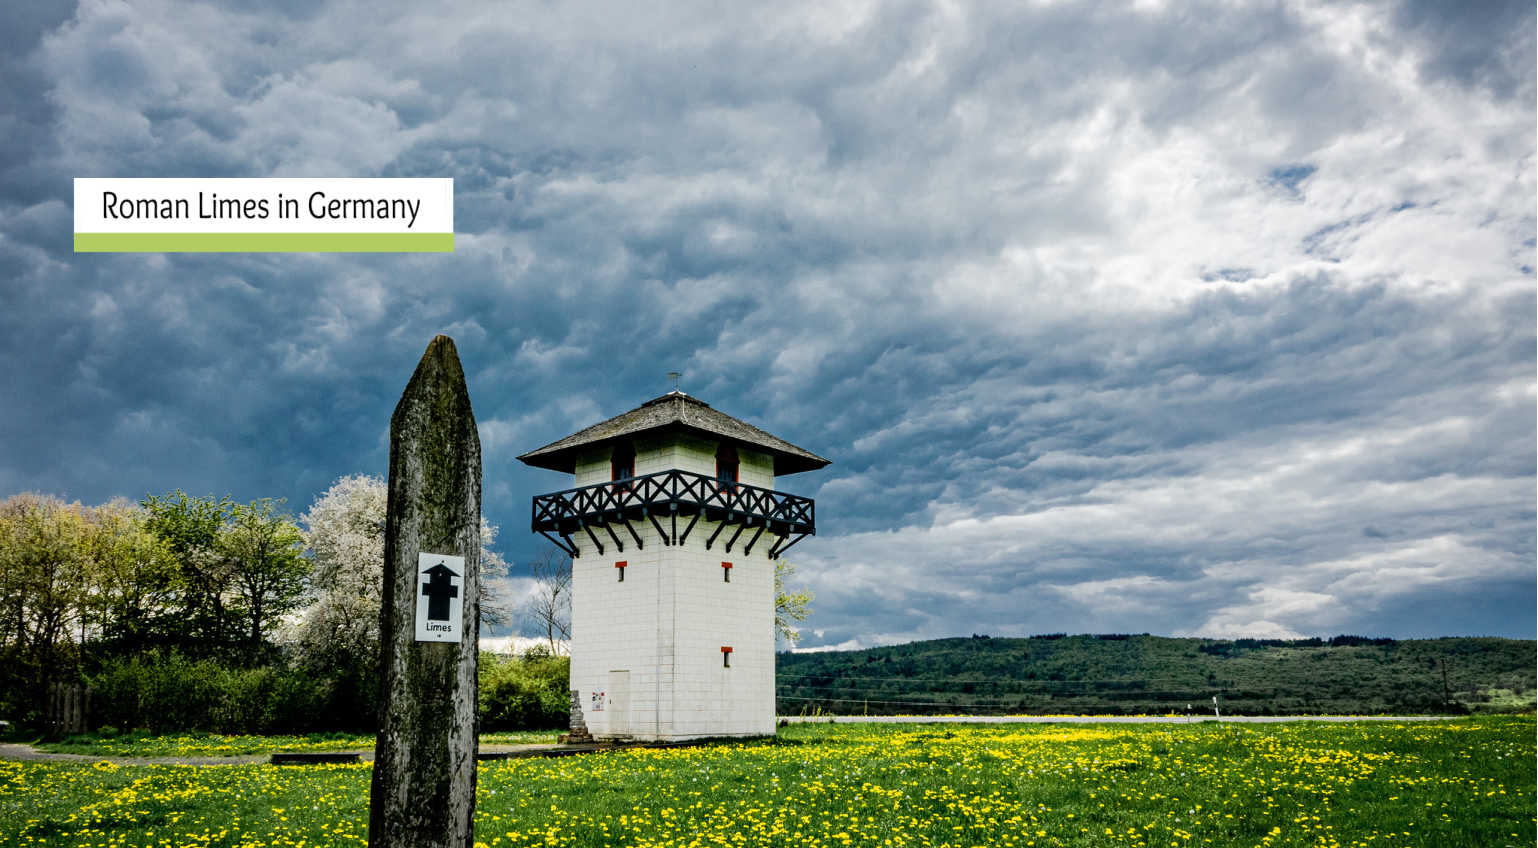 Roman Limes in Germany – Borders of the Roman Frontier